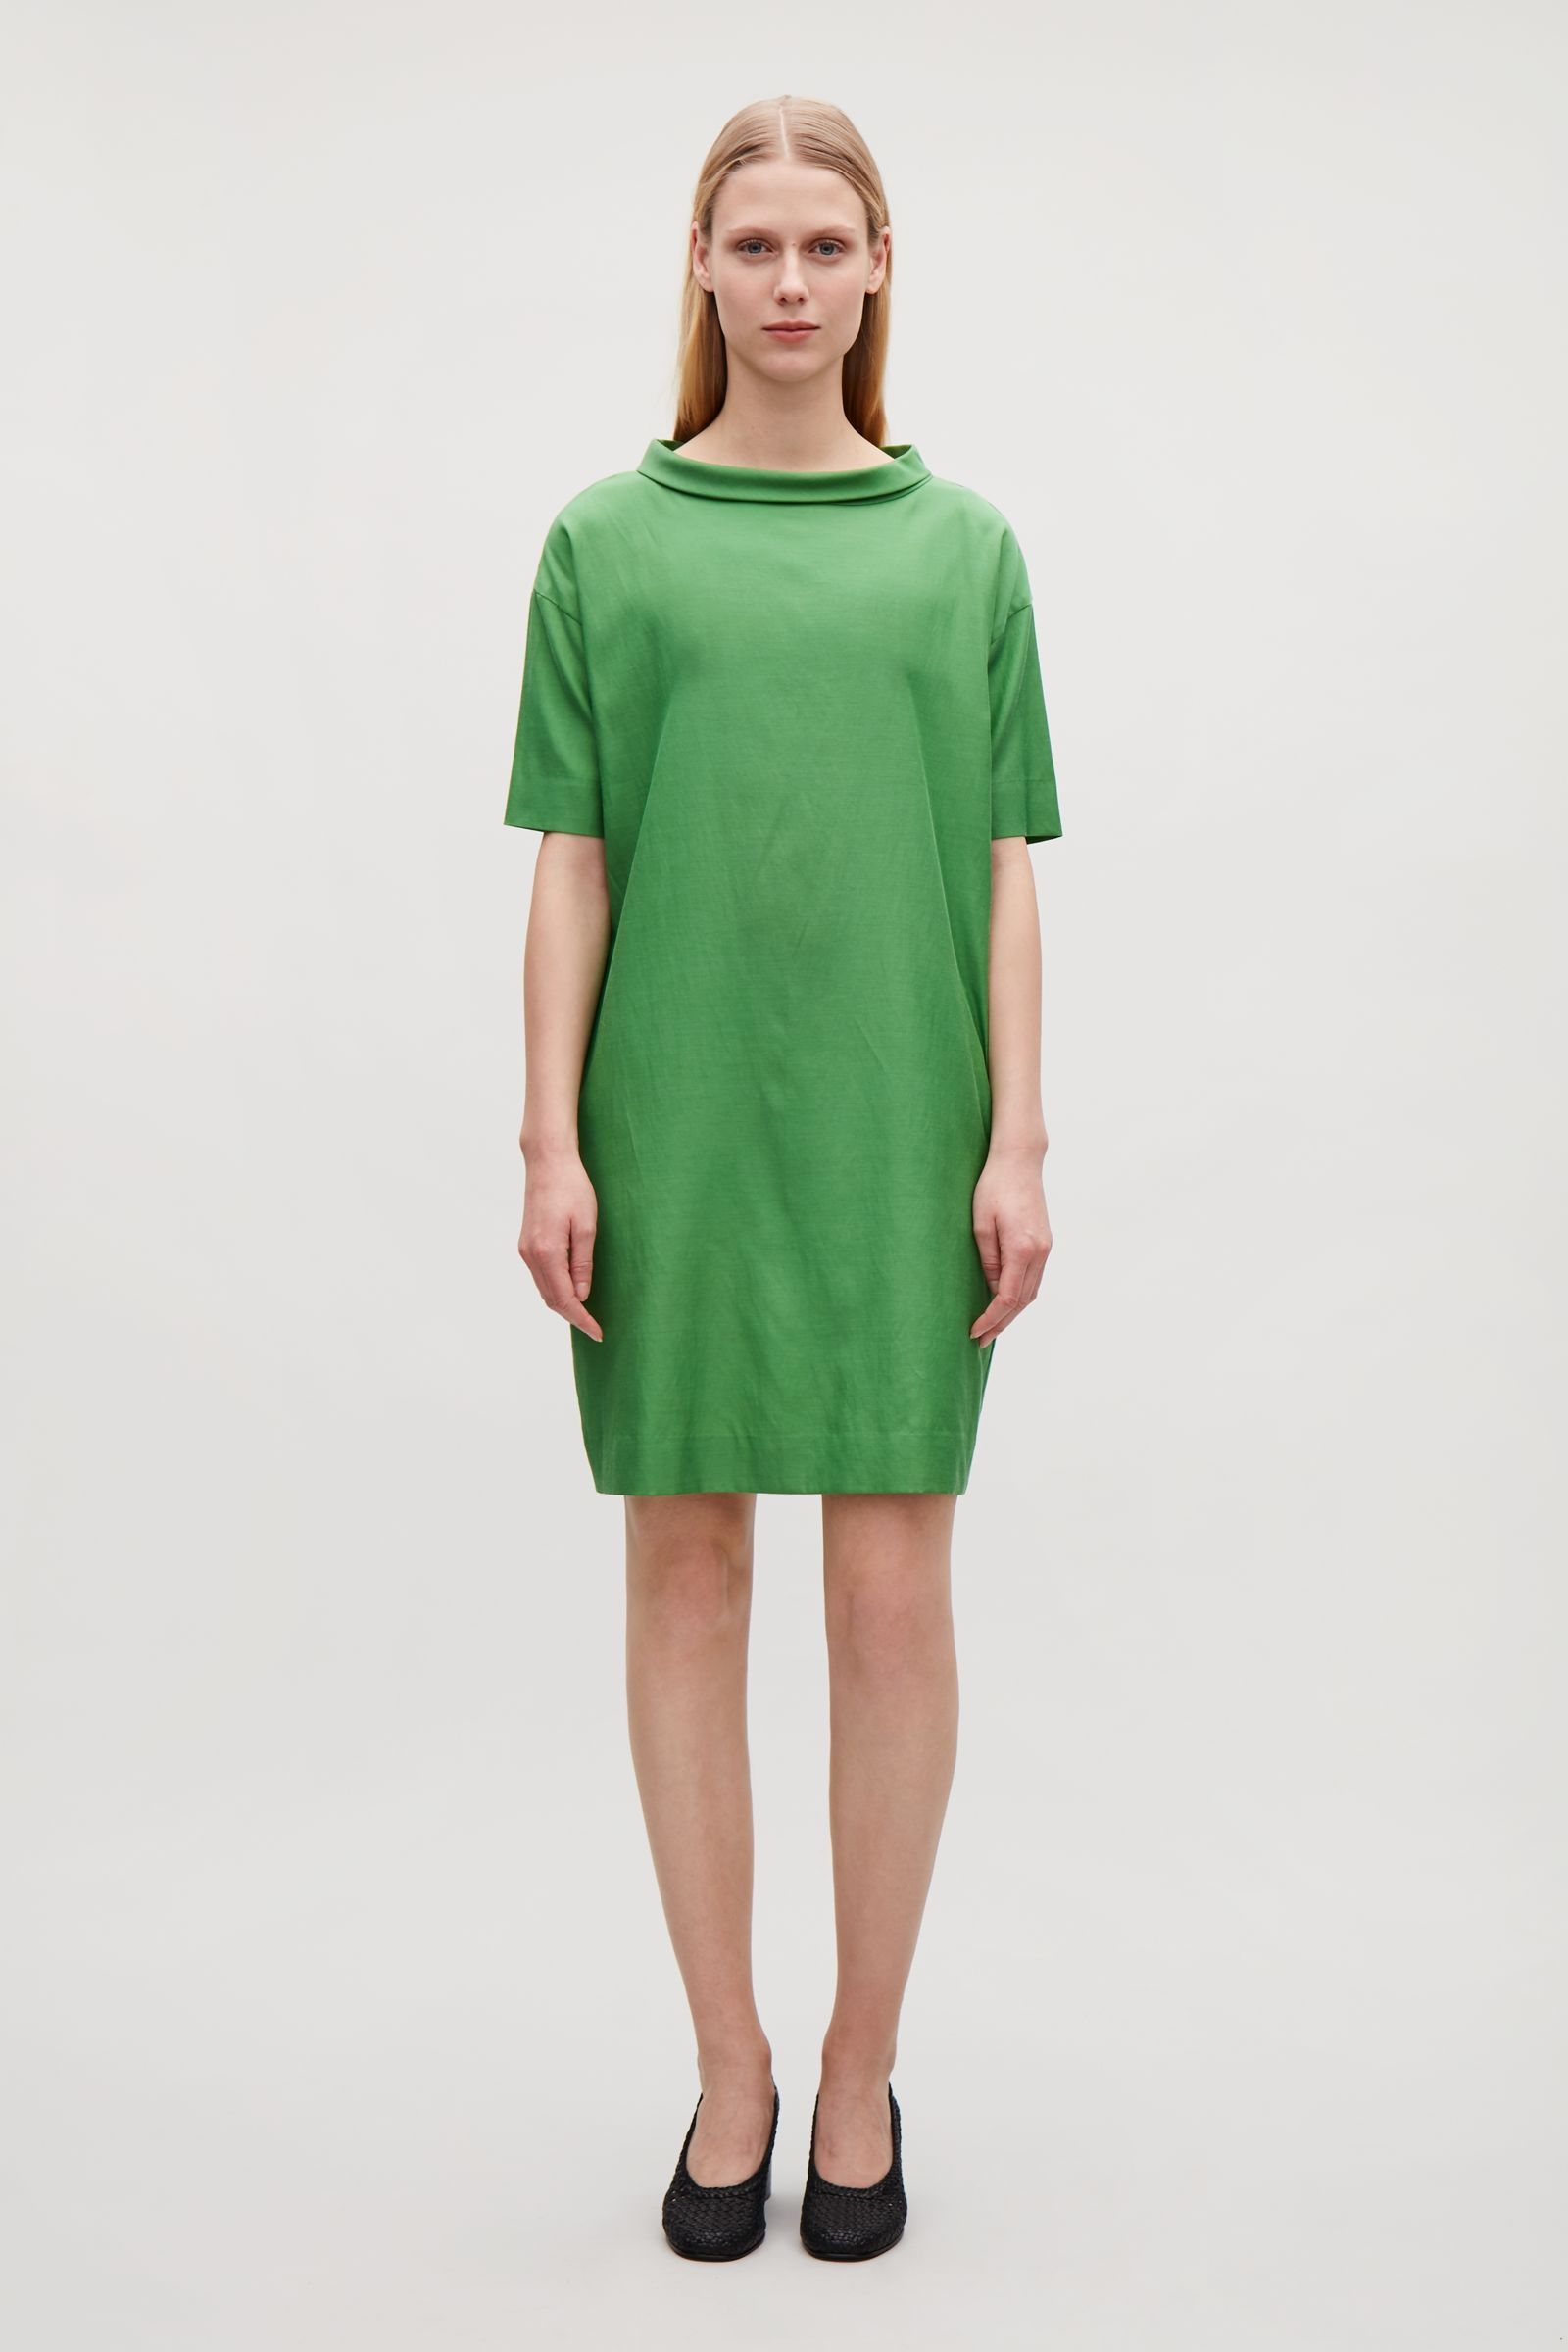 9cdd16837927e7 COS image 1 of Draped dress with folded collar in Green | Evi